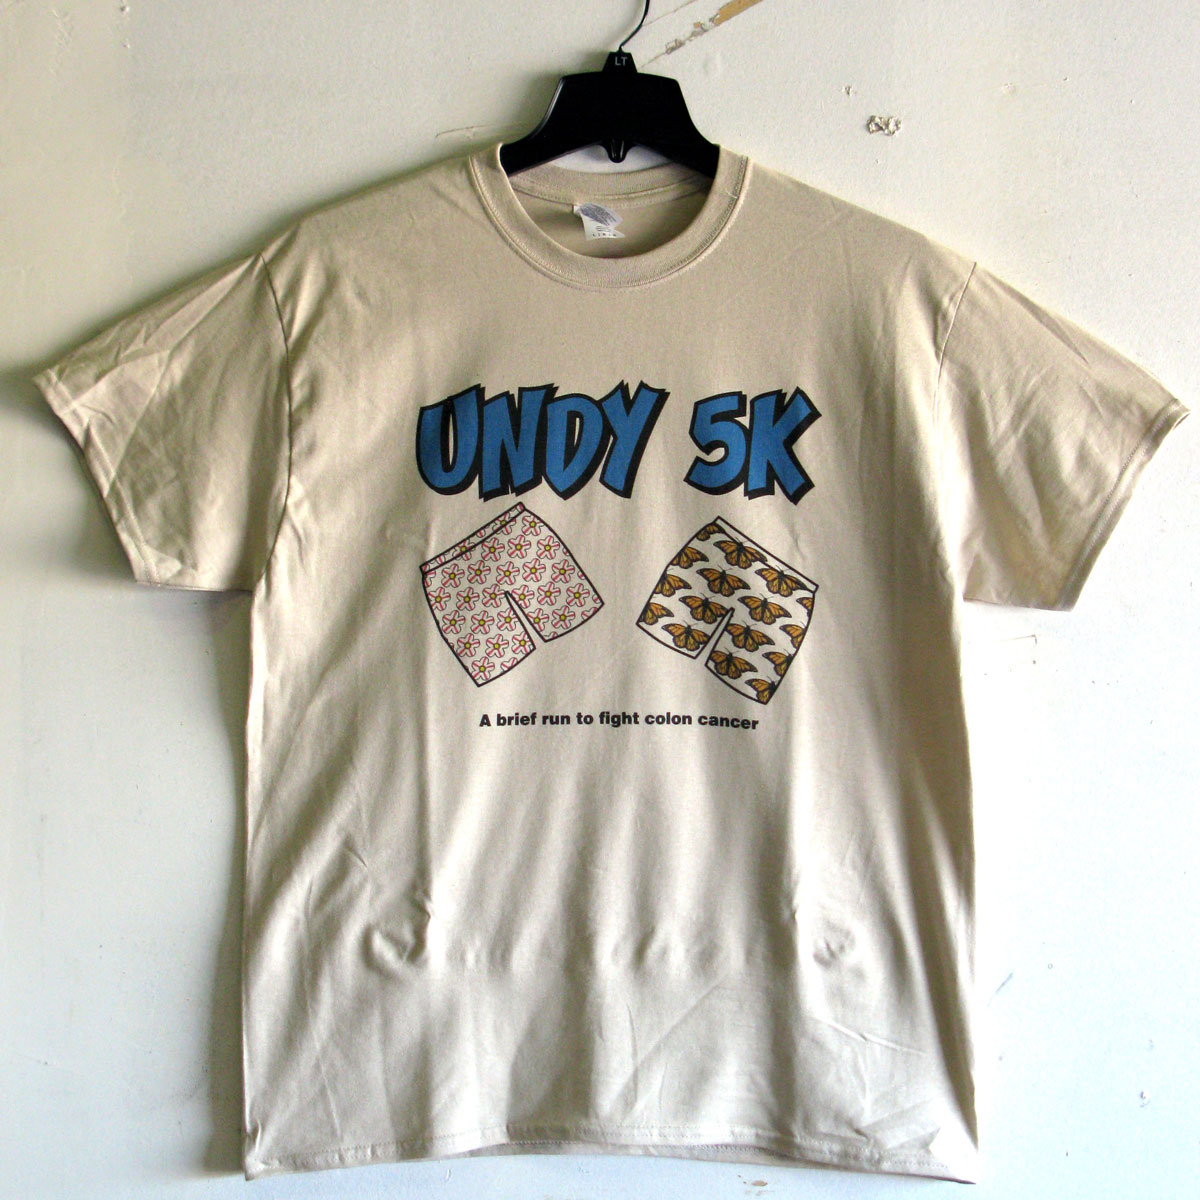 Image of the front design for the Undy 5 K run screen printed t-shirt